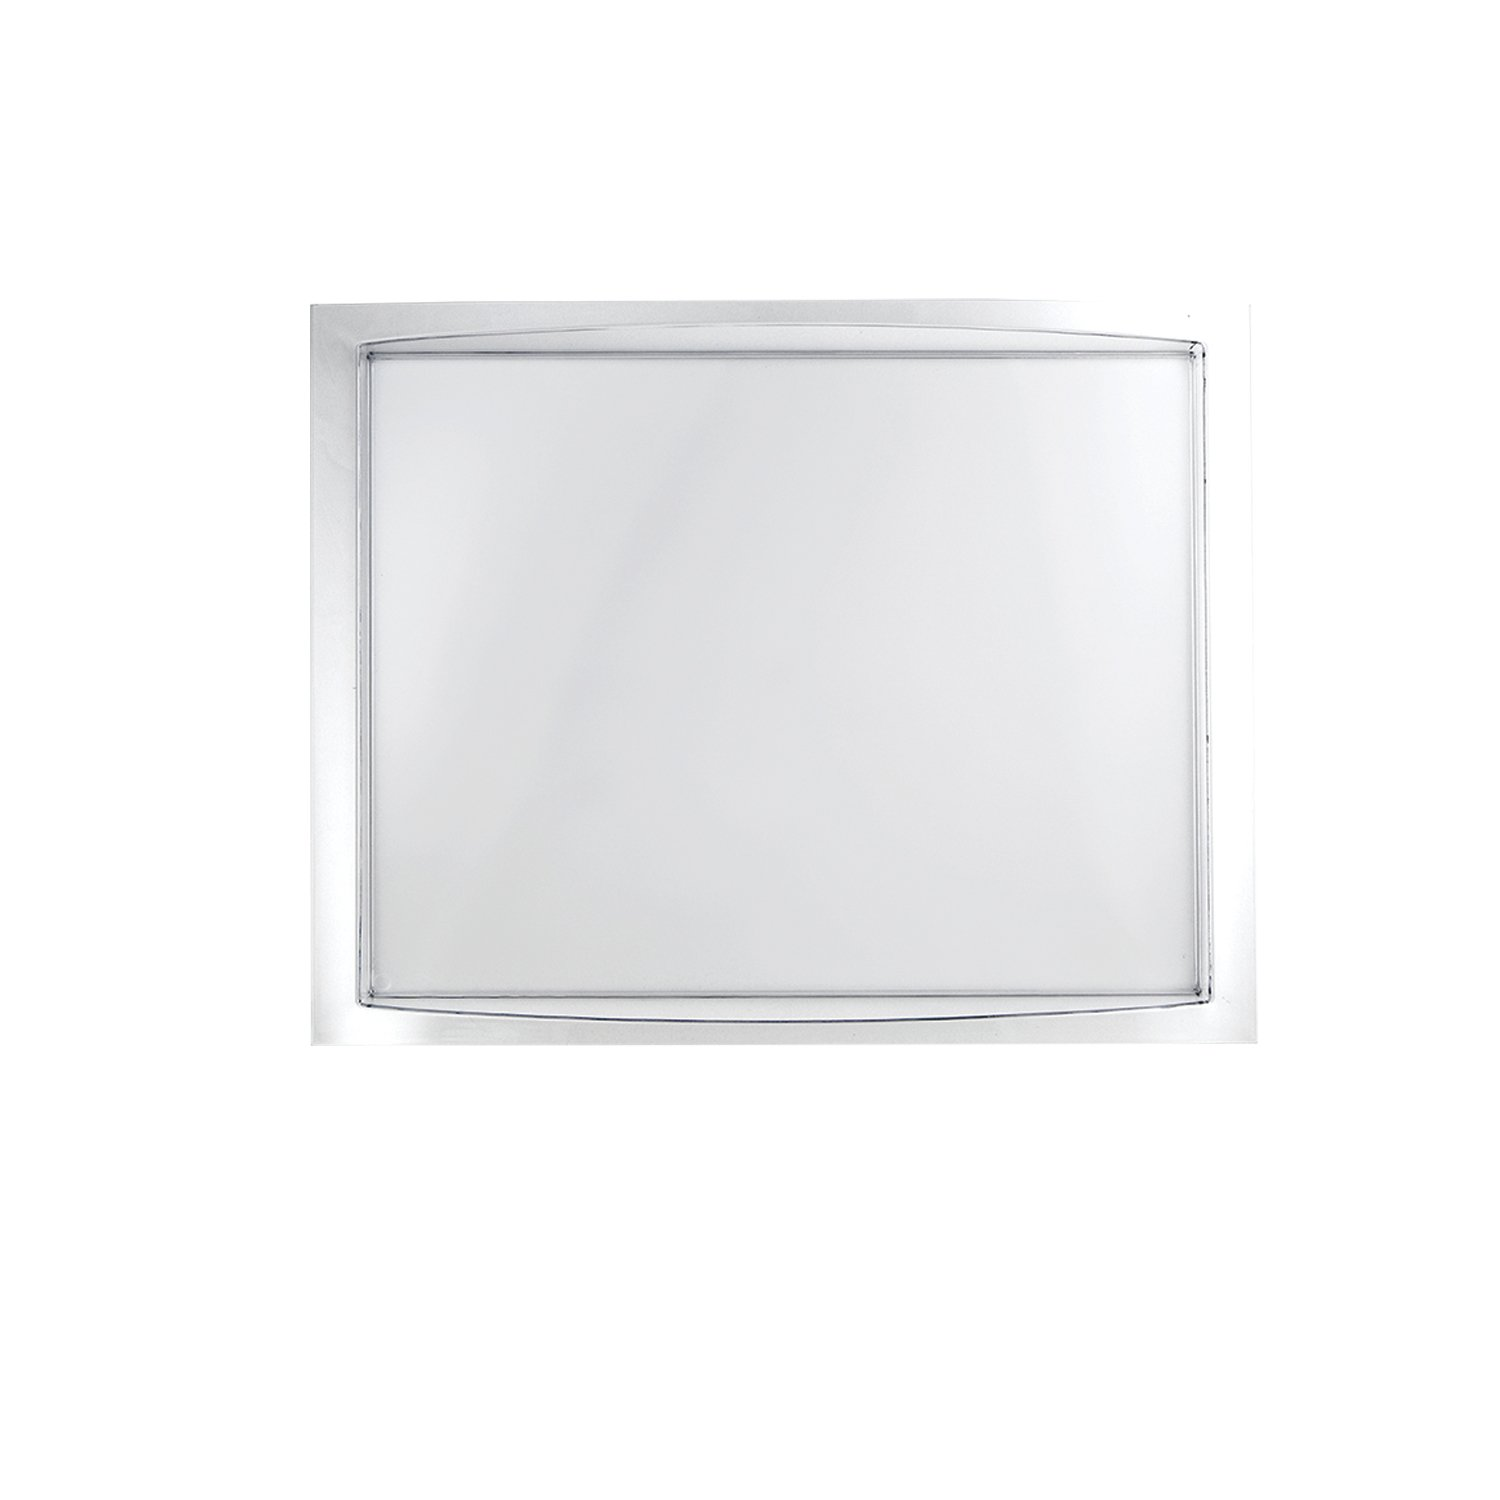 Party Essentials N131021 Hard Plastic Tray, 13'' x 10'', Clear (Pack of 12) by Party Essentials